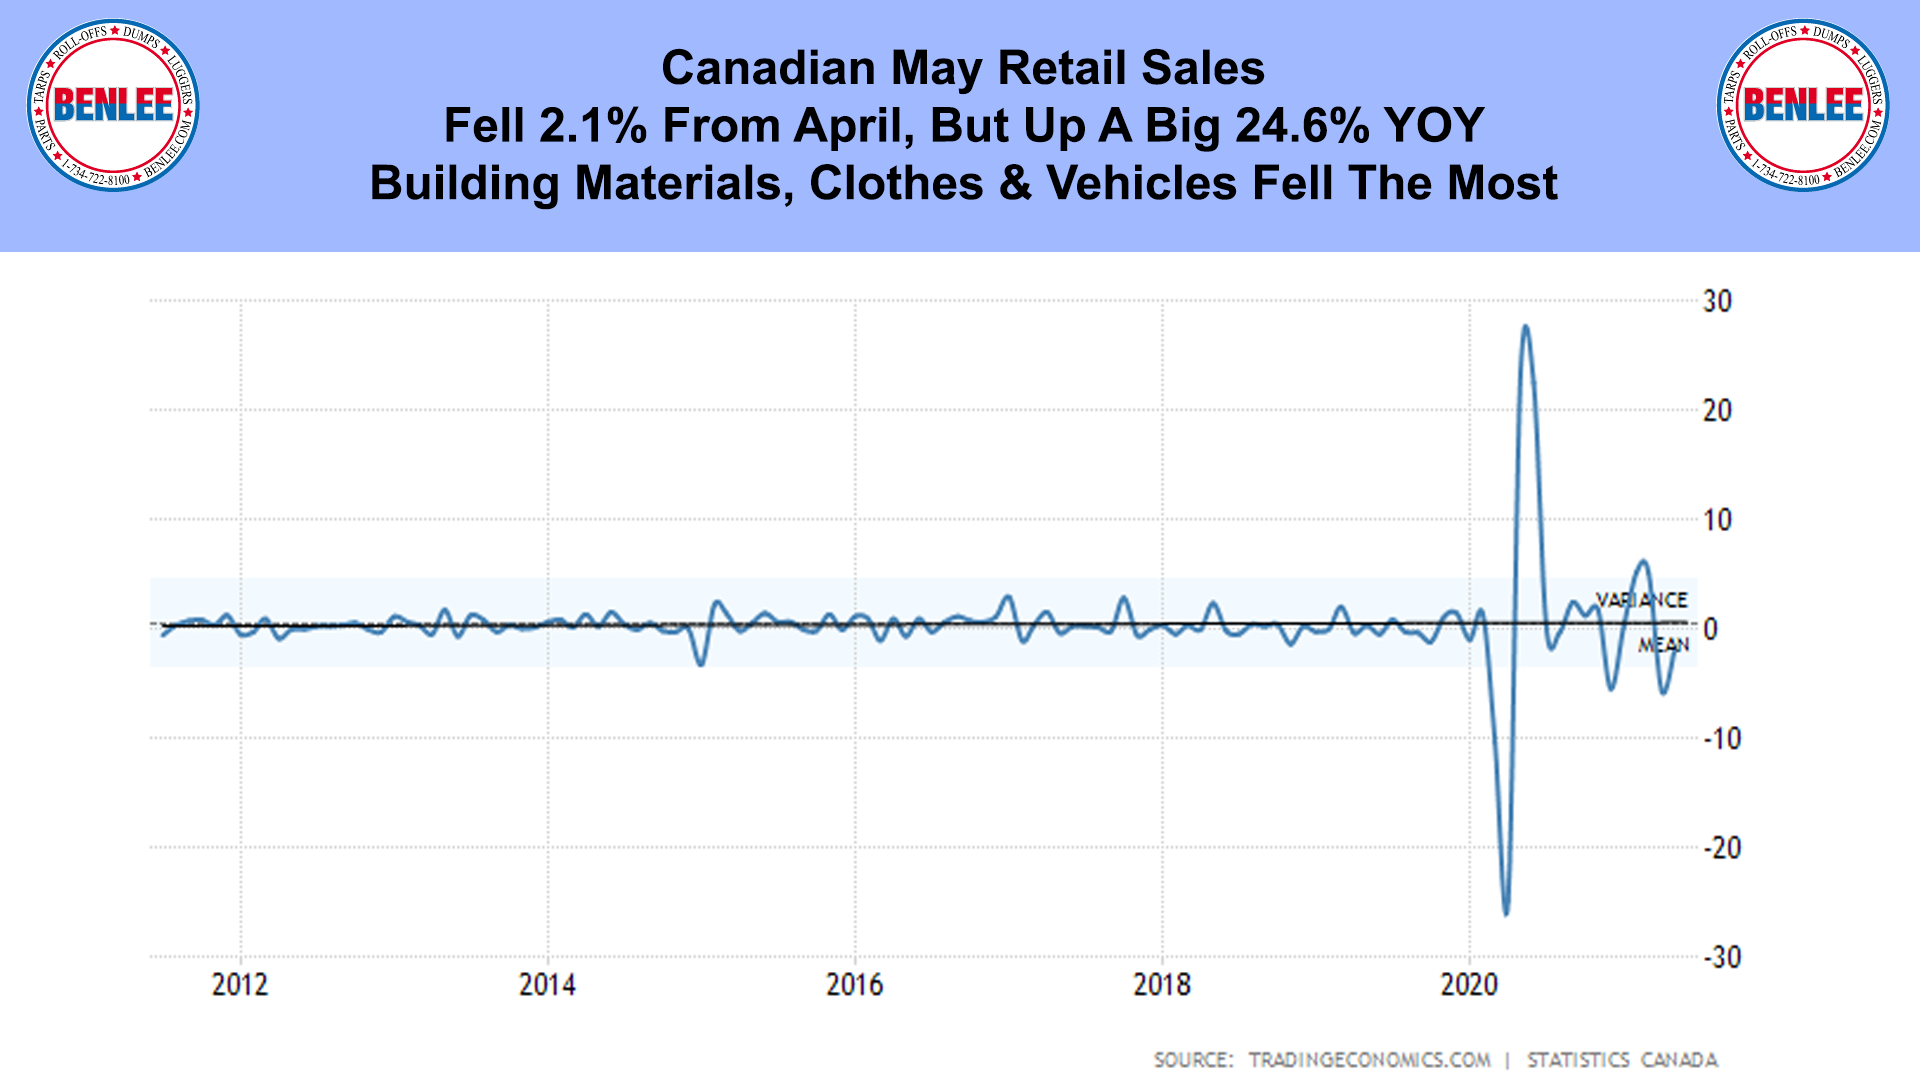 Canadian May Retail Sales